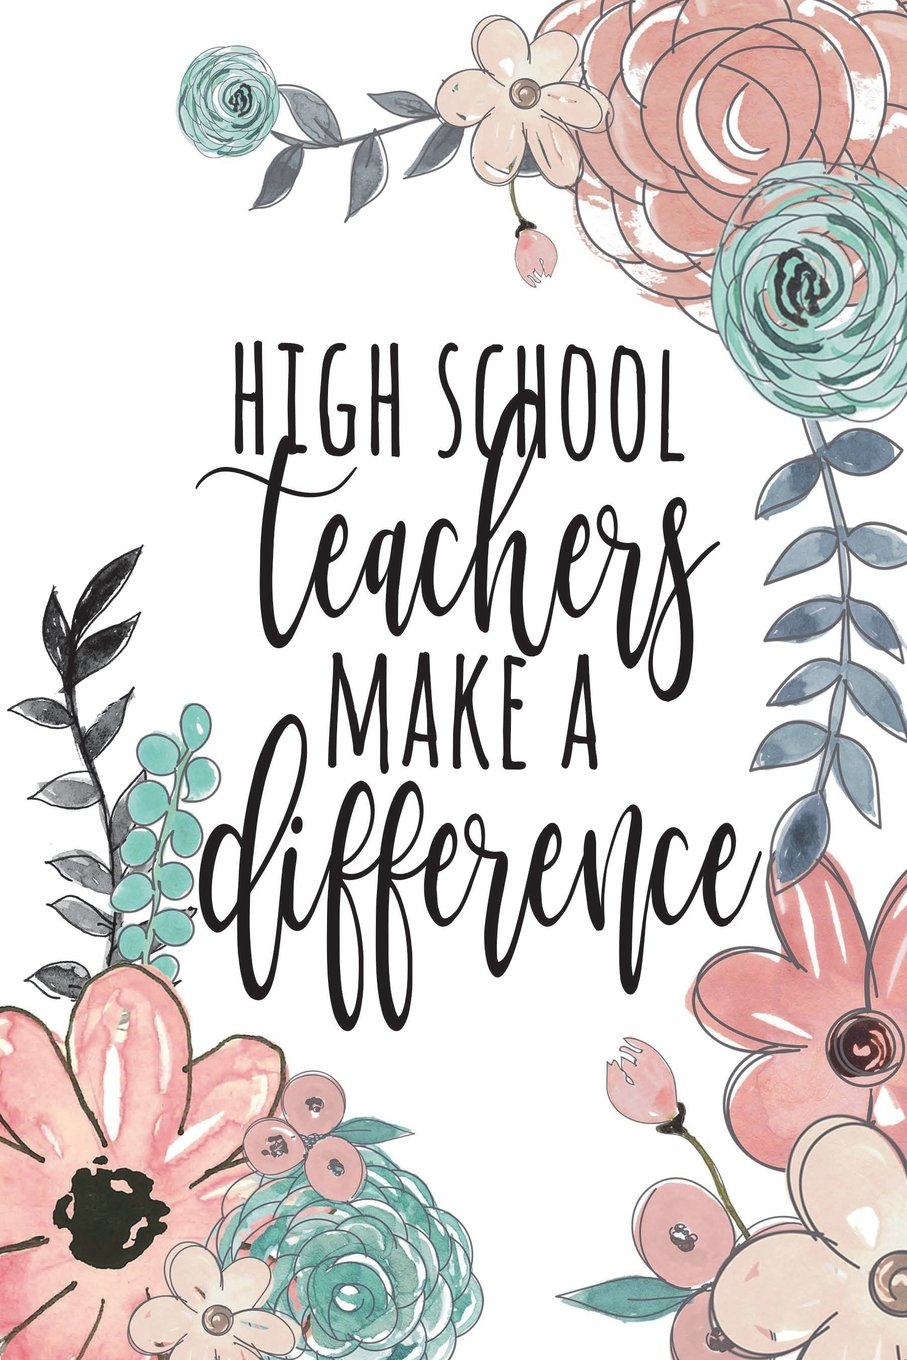 High School Teachers Make A Difference: High School Teacher Gifts, Teacher Journal Planner, Teacher Thank You GIfts, Teacher Notebook, Thank You Gifts ... Gifts, 6x9 college ruled notebook Text fb2 book